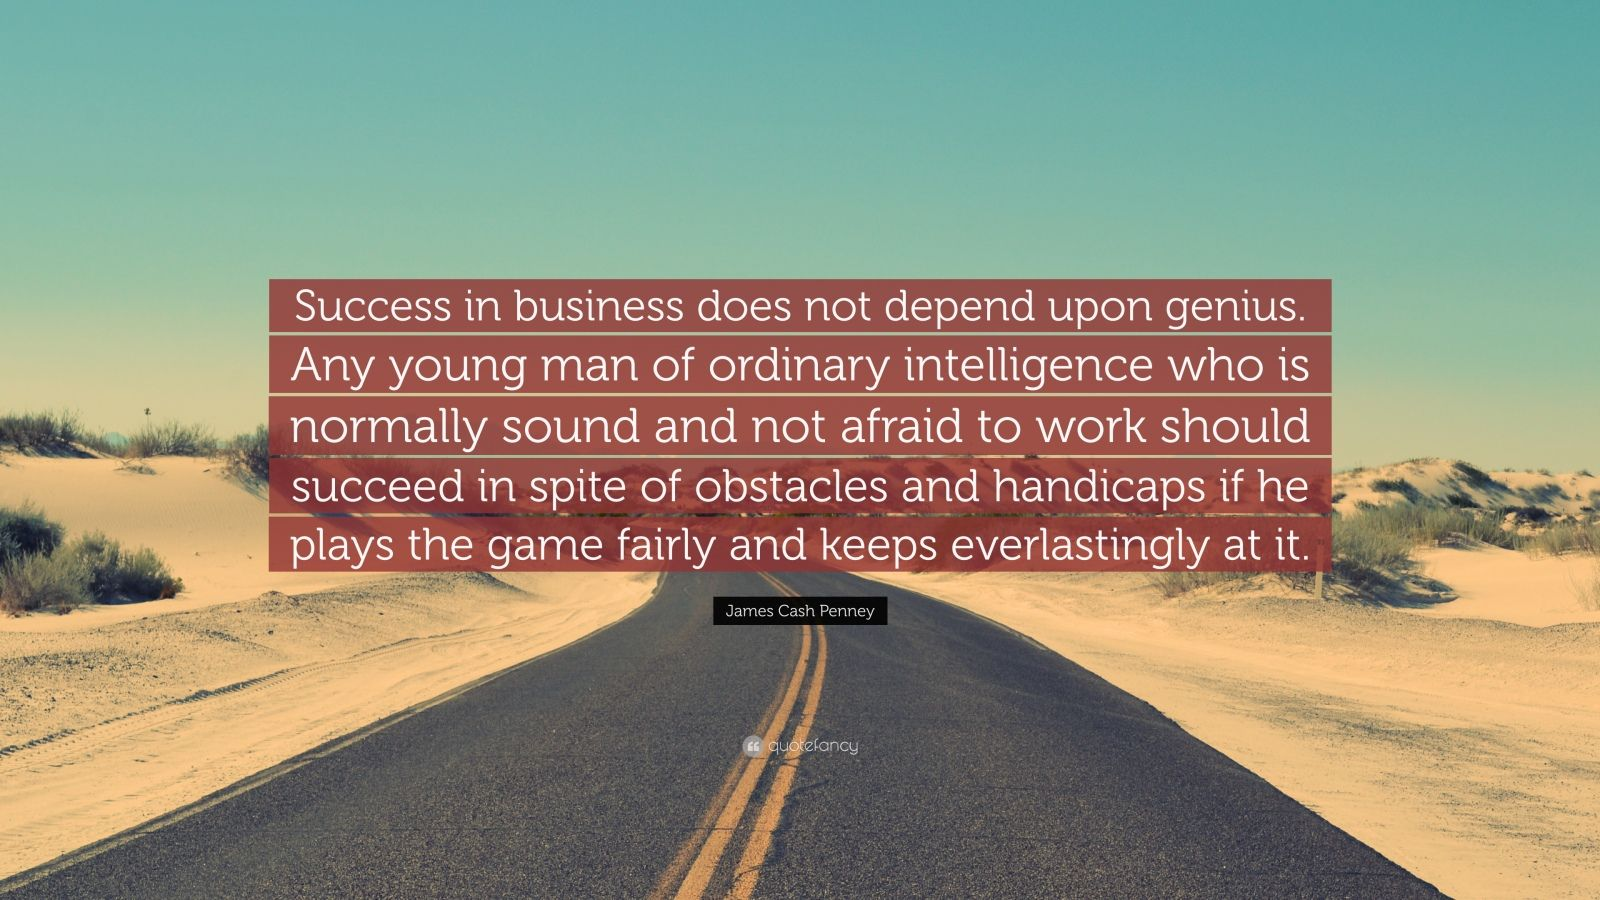 """James Cash Penney Quote: """"Success in business does not depend upon genius. Any young man of ordinary intelligence who is normally sound and not afraid to work should succeed in spite of obstacles and handicaps if he plays the game fairly and keeps everlastingly at it."""""""